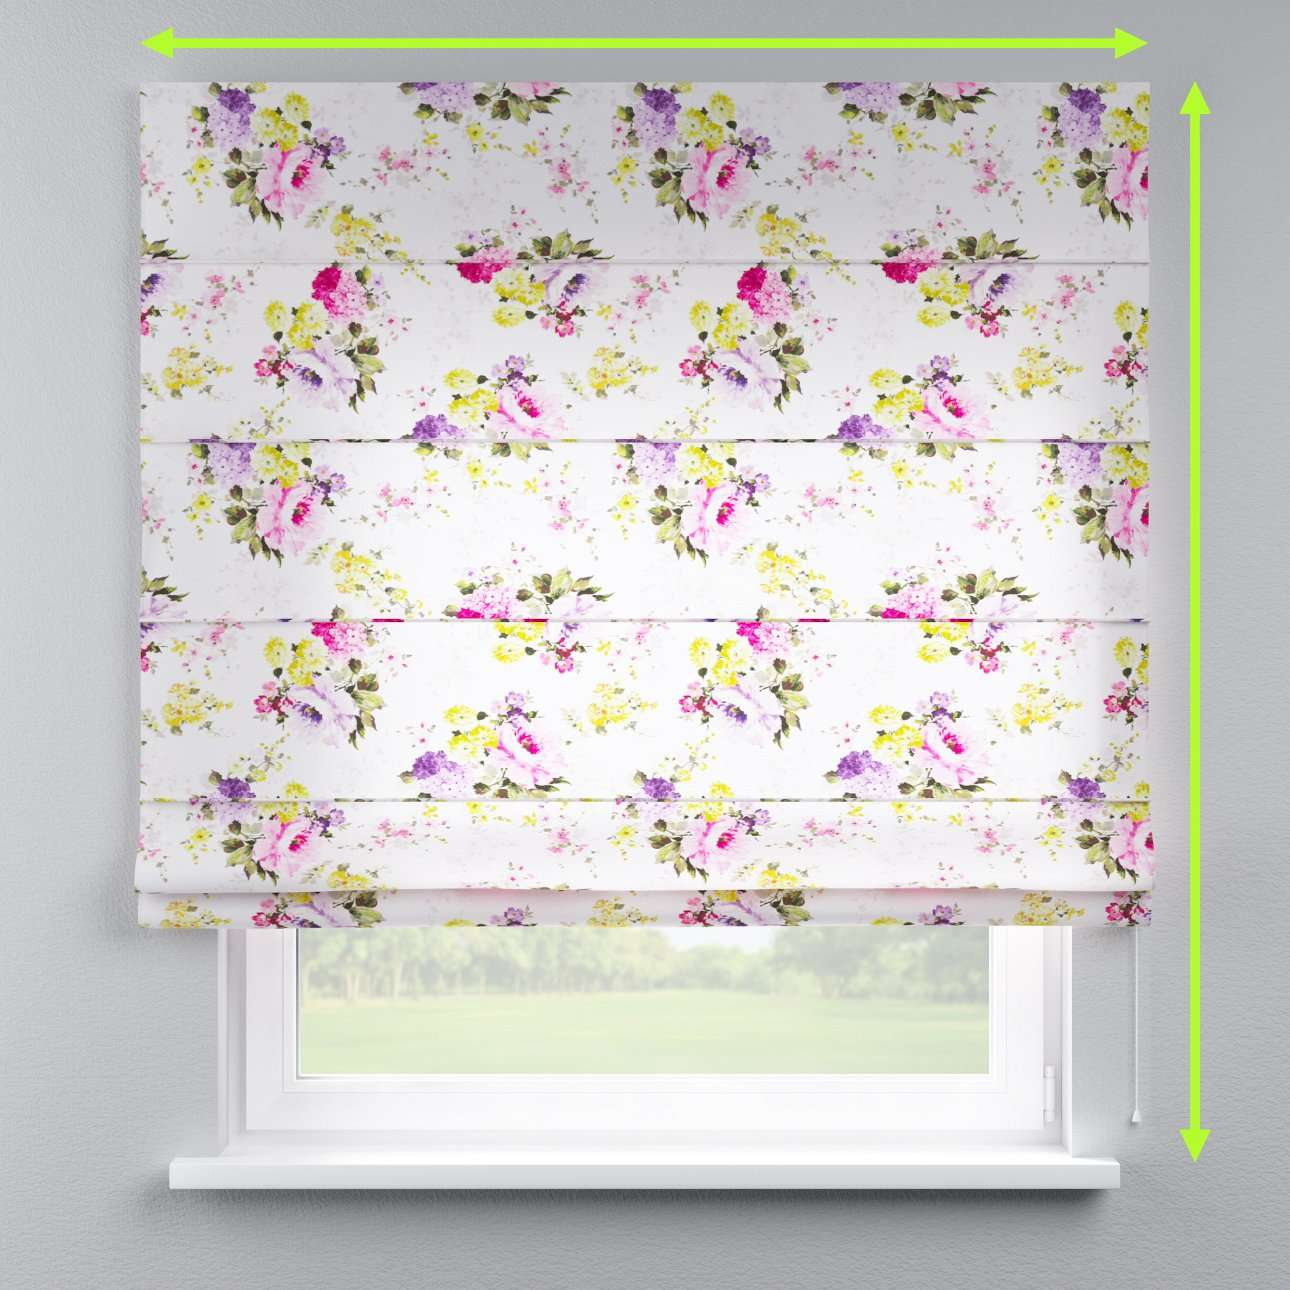 Capri roman blind in collection Monet, fabric: 140-00